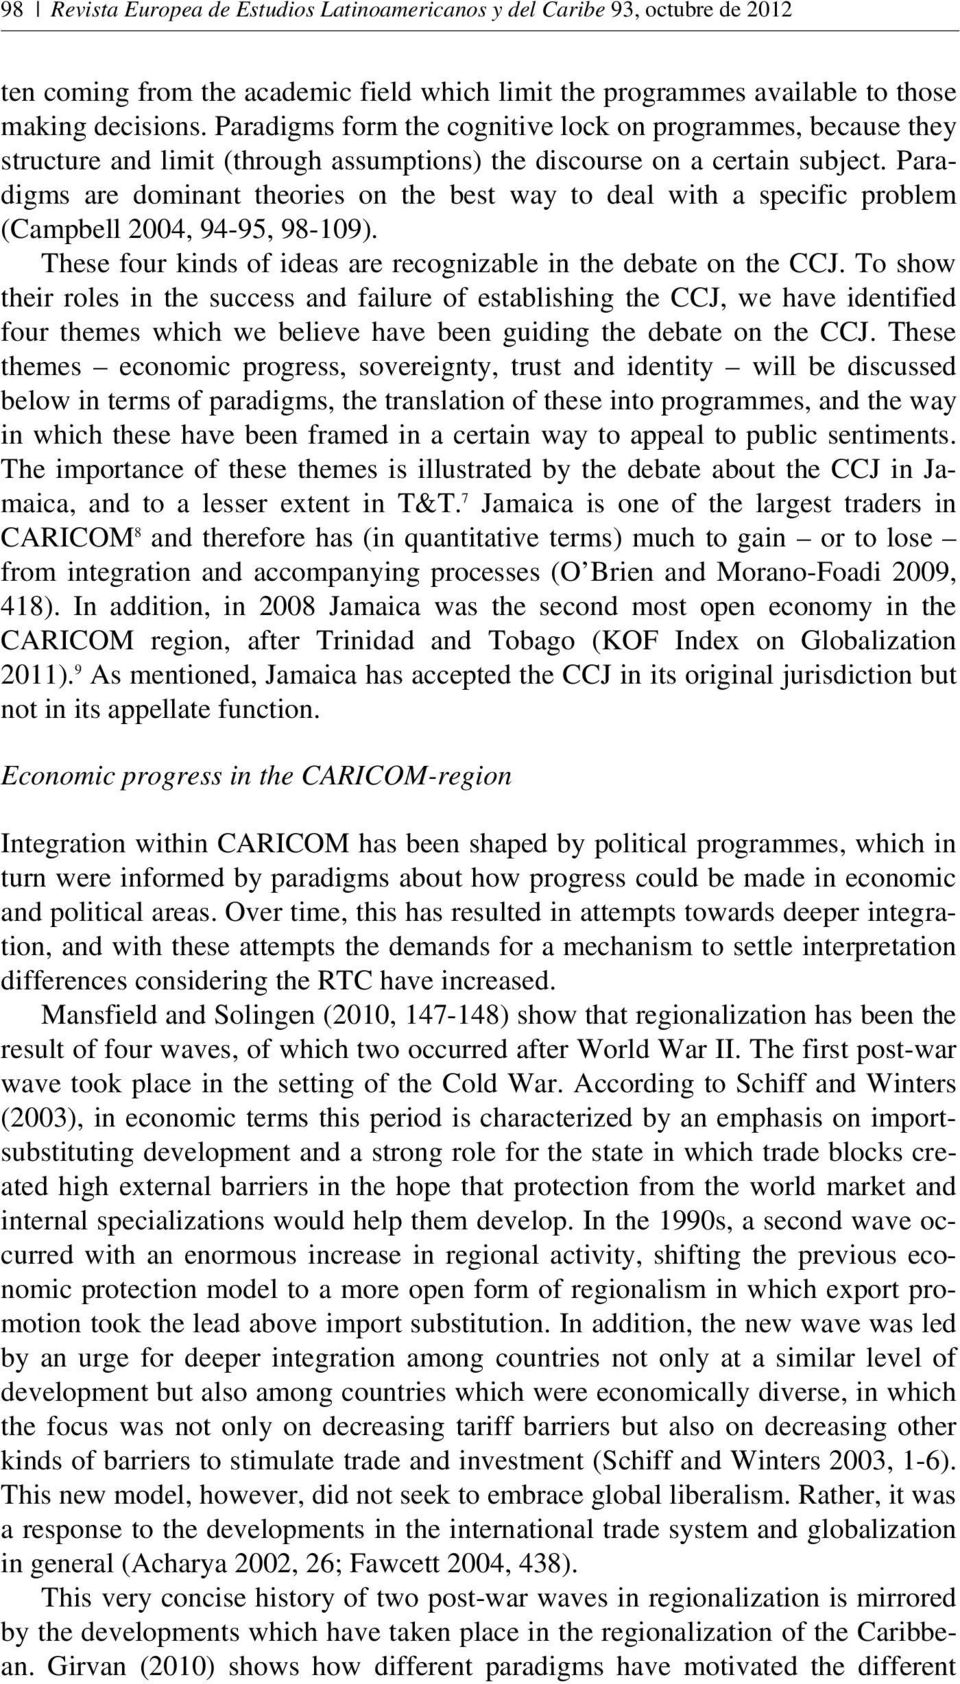 Paradigms are dominant theories on the best way to deal with a specific problem (Campbell 2004, 94-95, 98-109). These four kinds of ideas are recognizable in the debate on the CCJ.